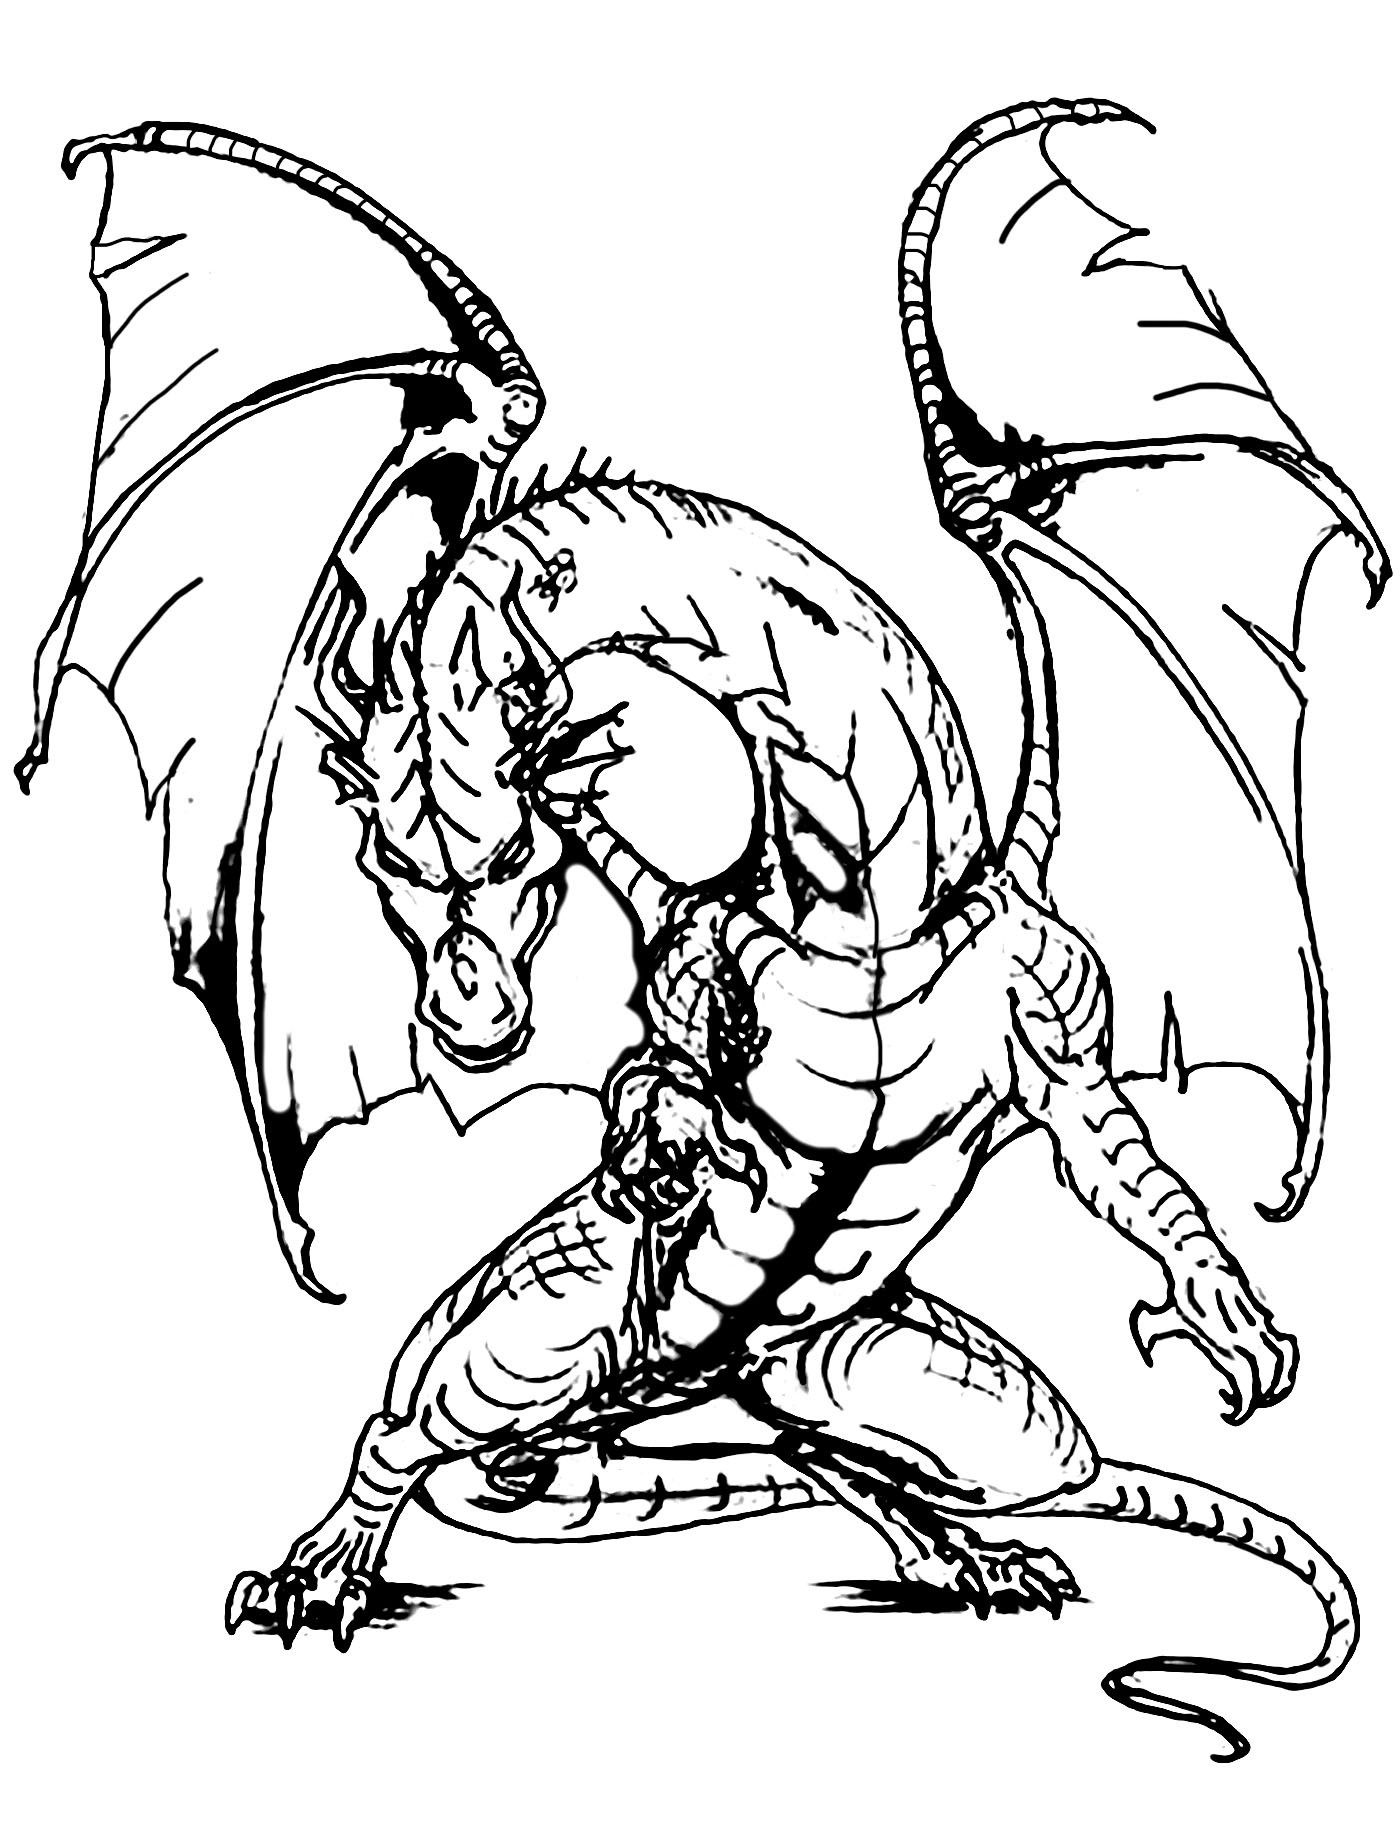 Minecraft Coloring Pages Designs Within Ender Dragon Minecraft Coloring Pages Dragon Coloring Page Animal Coloring Pages